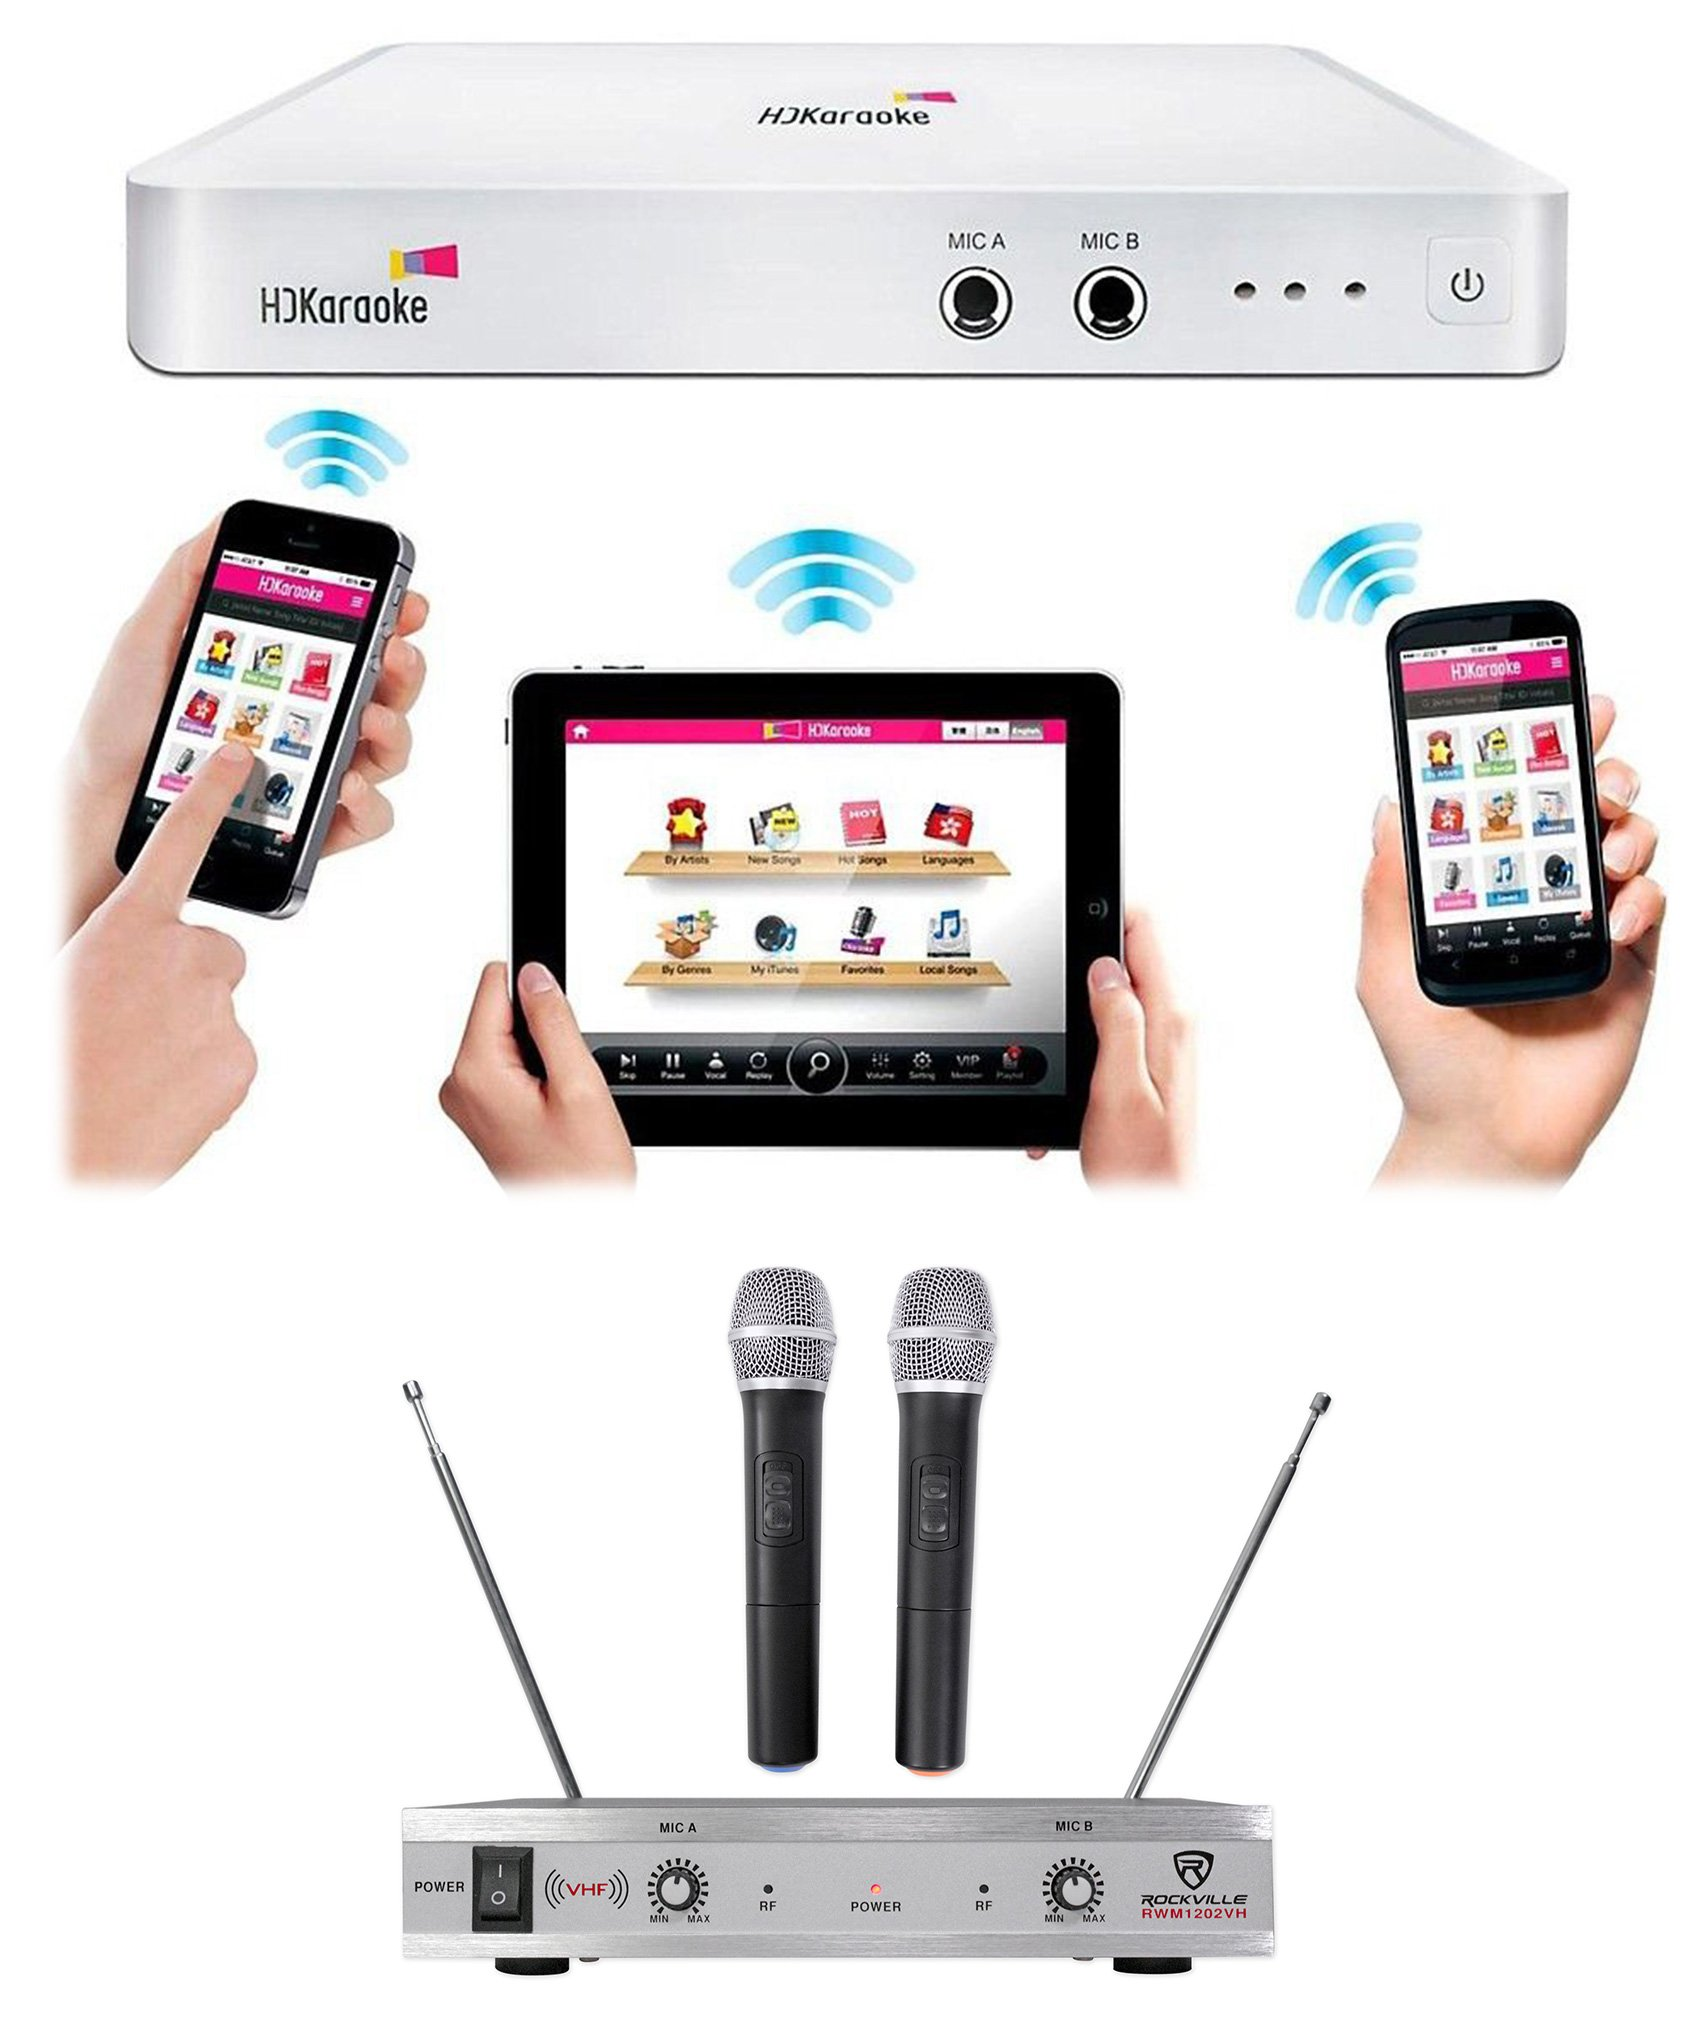 HDKaraoke HDK Box 2.0 Wi-Fi Karaoke Machine System 4 TV, iPad+(2) Wireless Mics by HDKaraoke